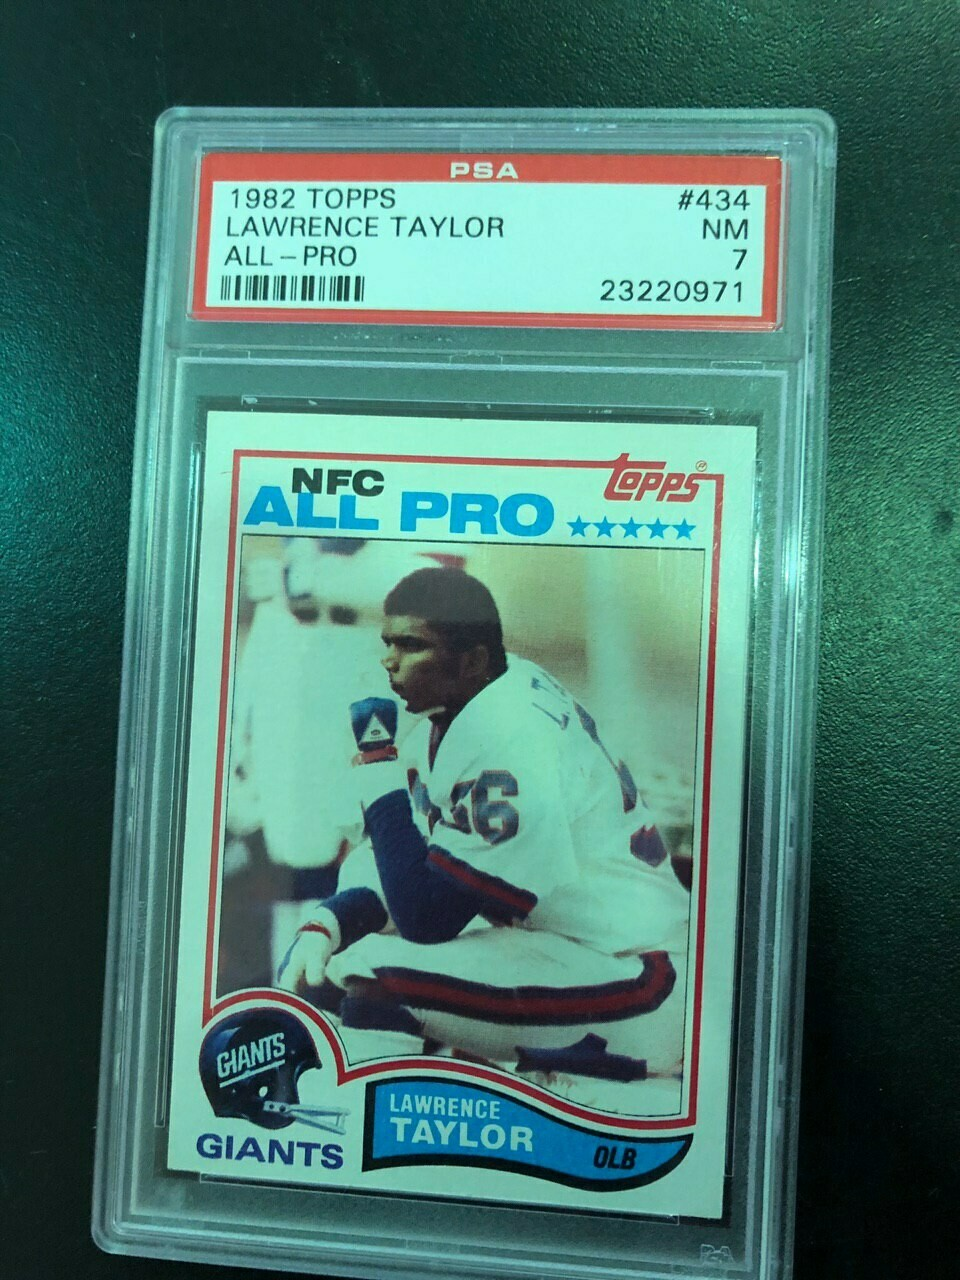 1982 Topps #434 Lawrence Taylor rookie PSA graded 7, $25